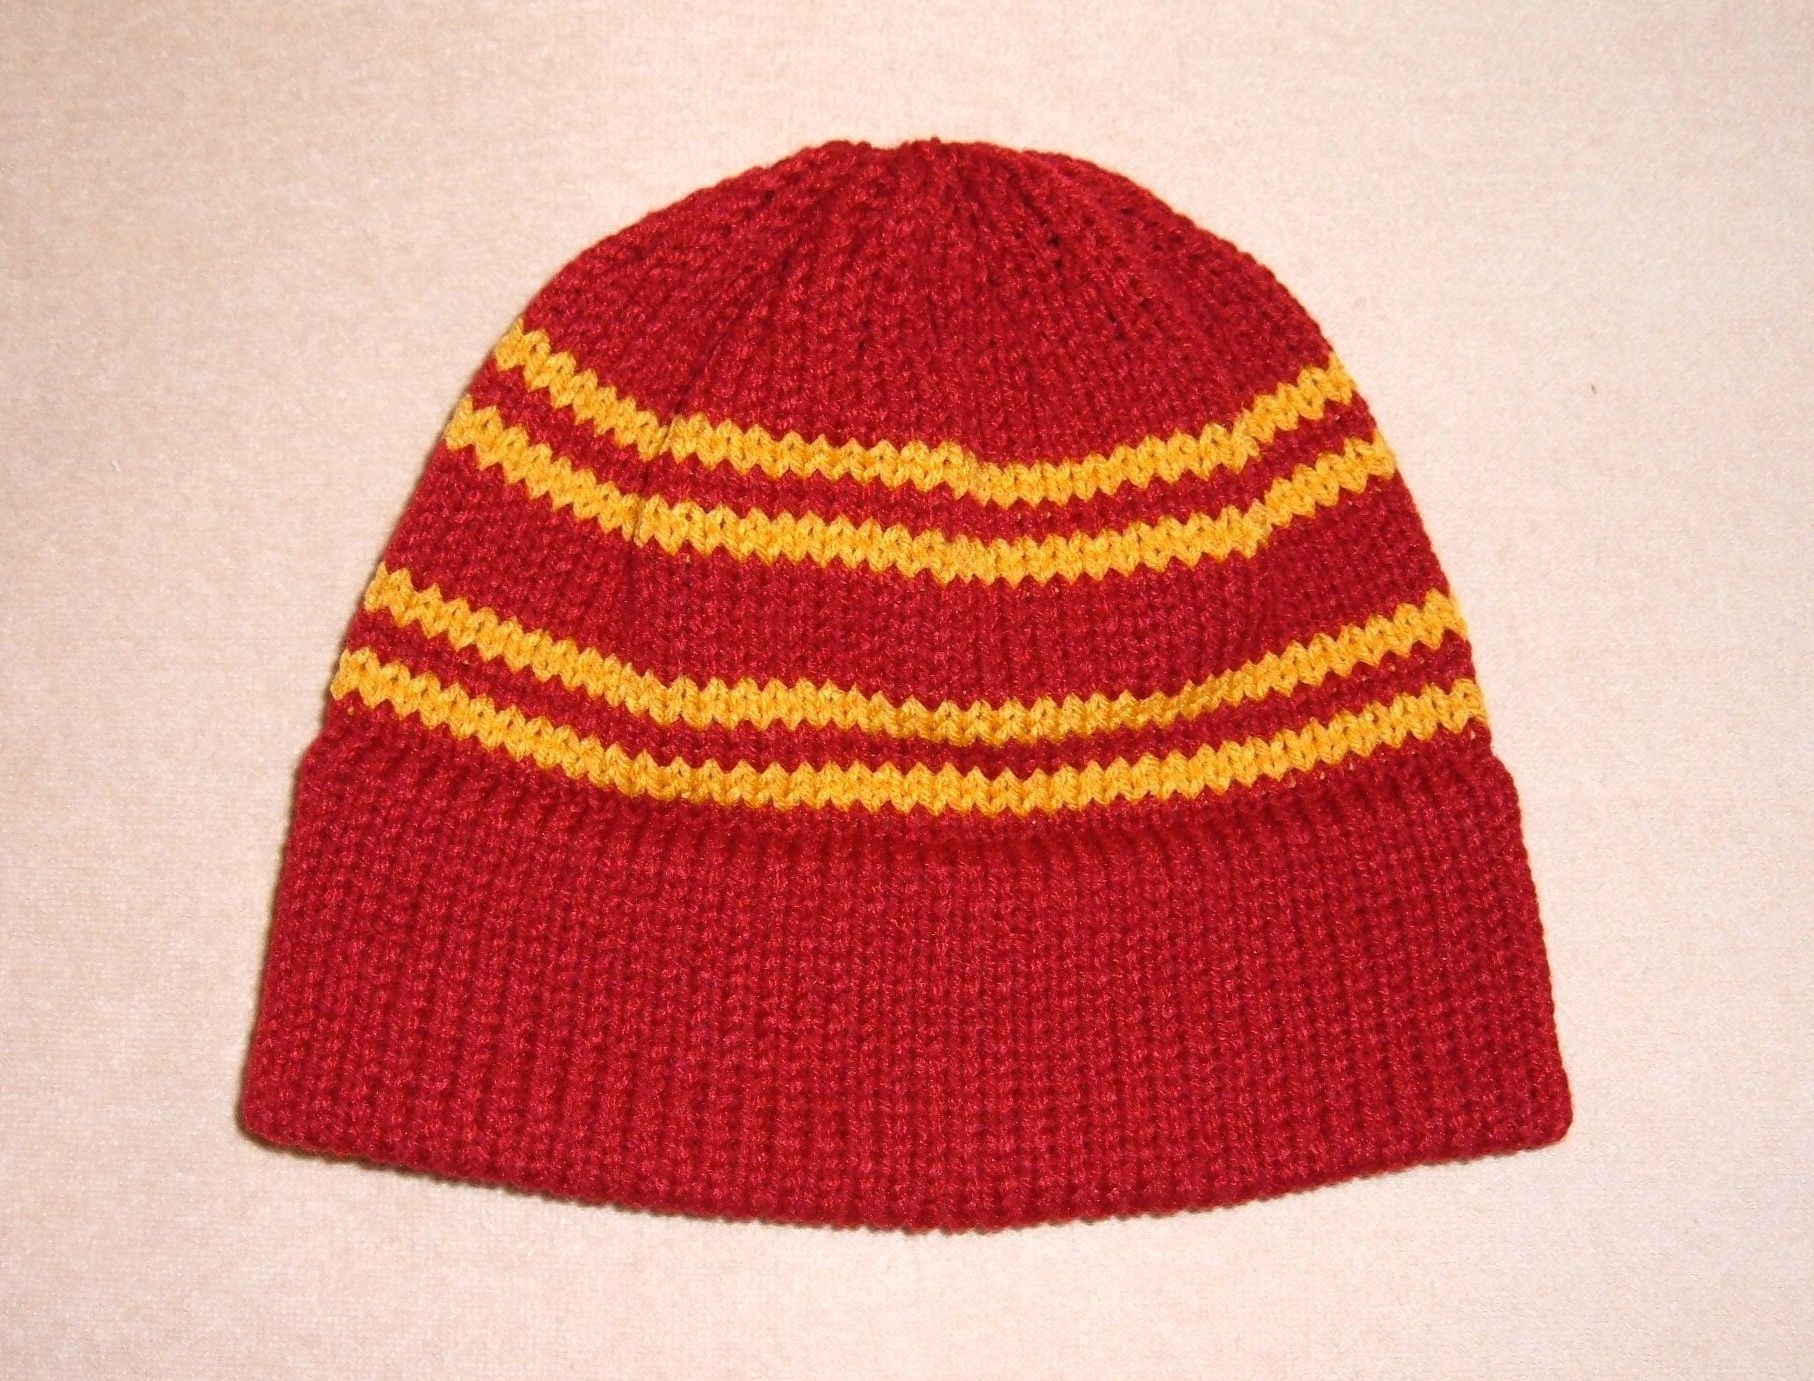 Knit Harry Potter Scarf Pattern : Easy machine knit hat. Knitting I want to do Pinterest Knit hats